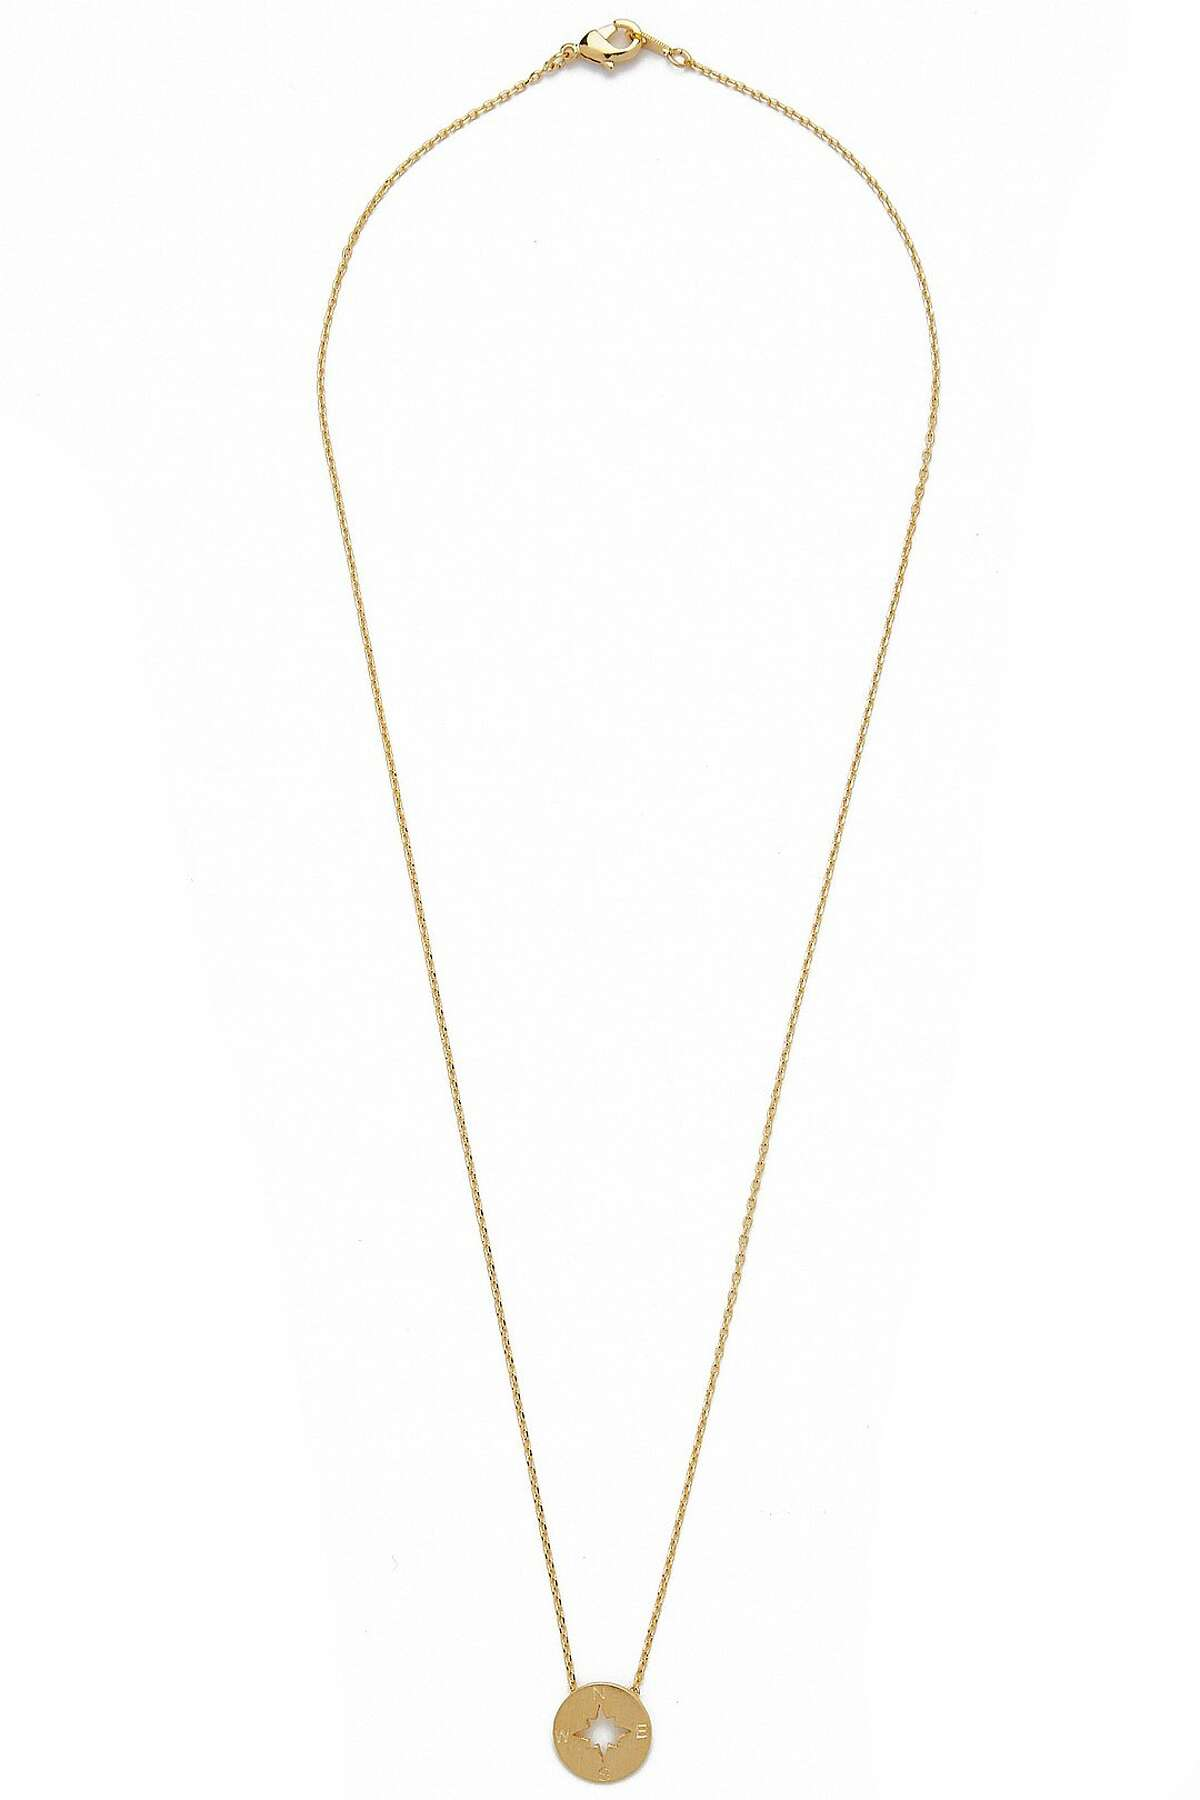 Modern Citizen's Going Places Pendant Necklace in gold, rose gold, or silver. $38 each.